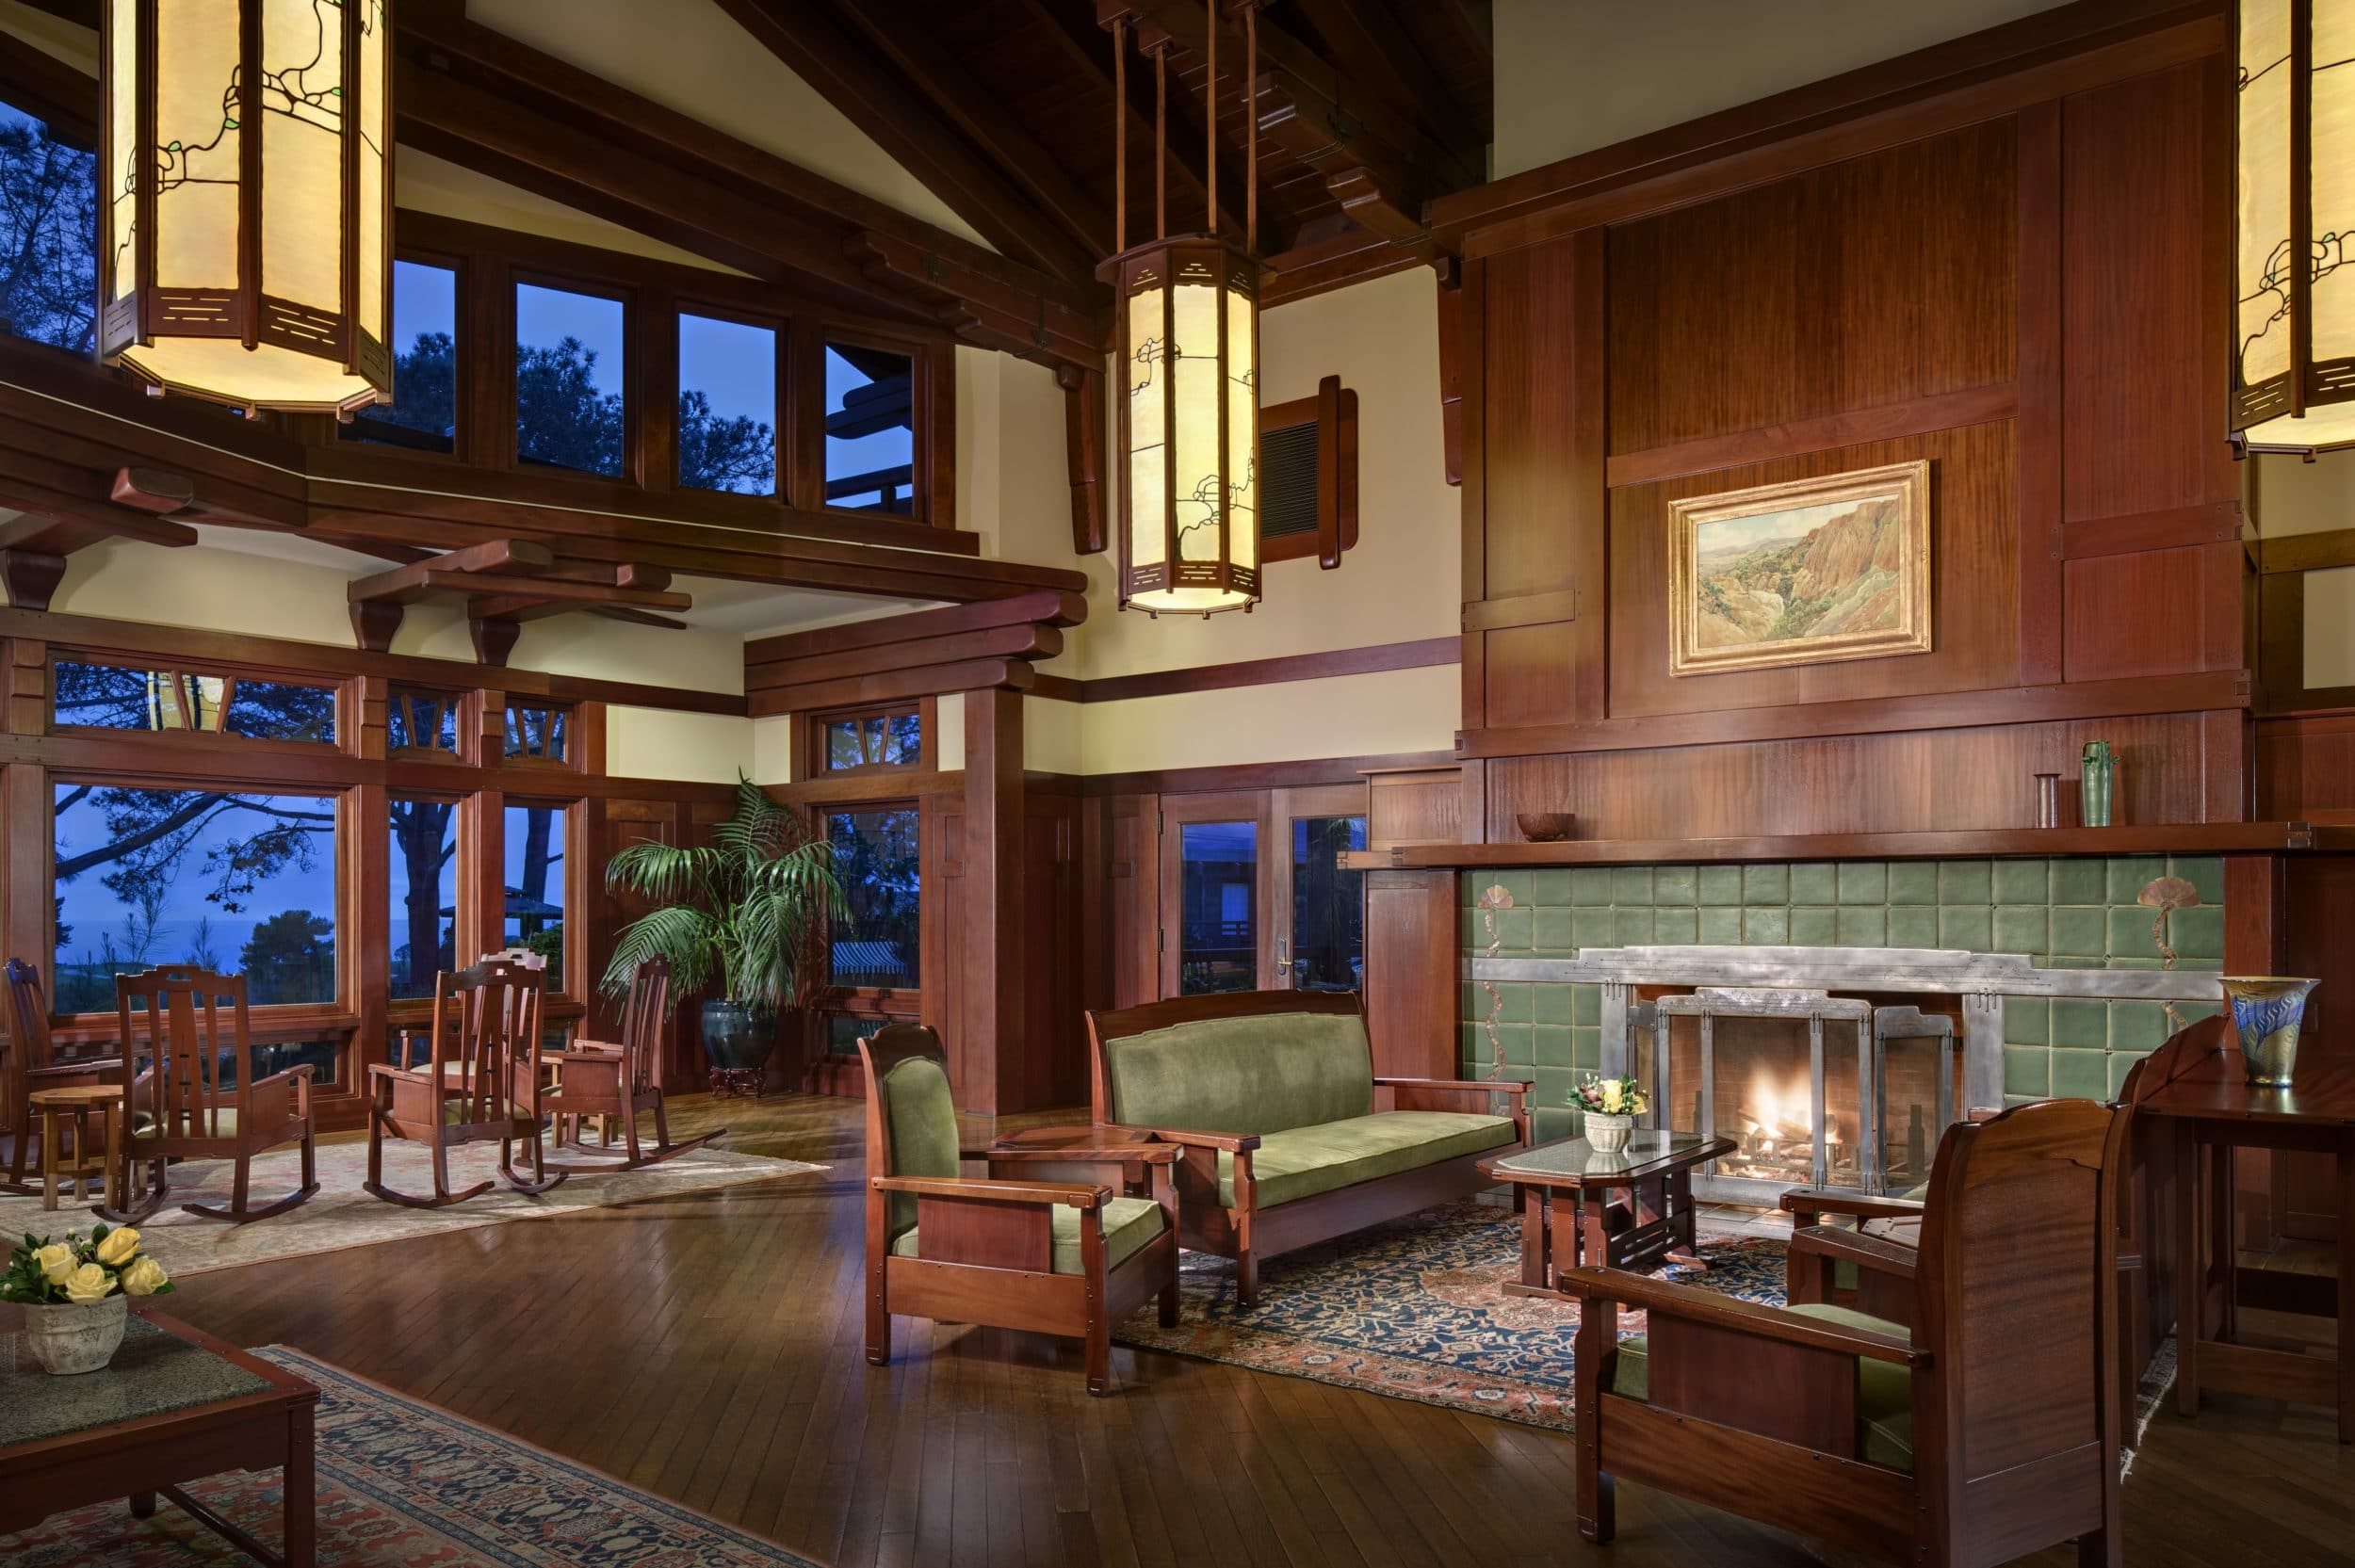 The Lodge at Torrey Pines lobby showcares 1900s California Craftsman-style